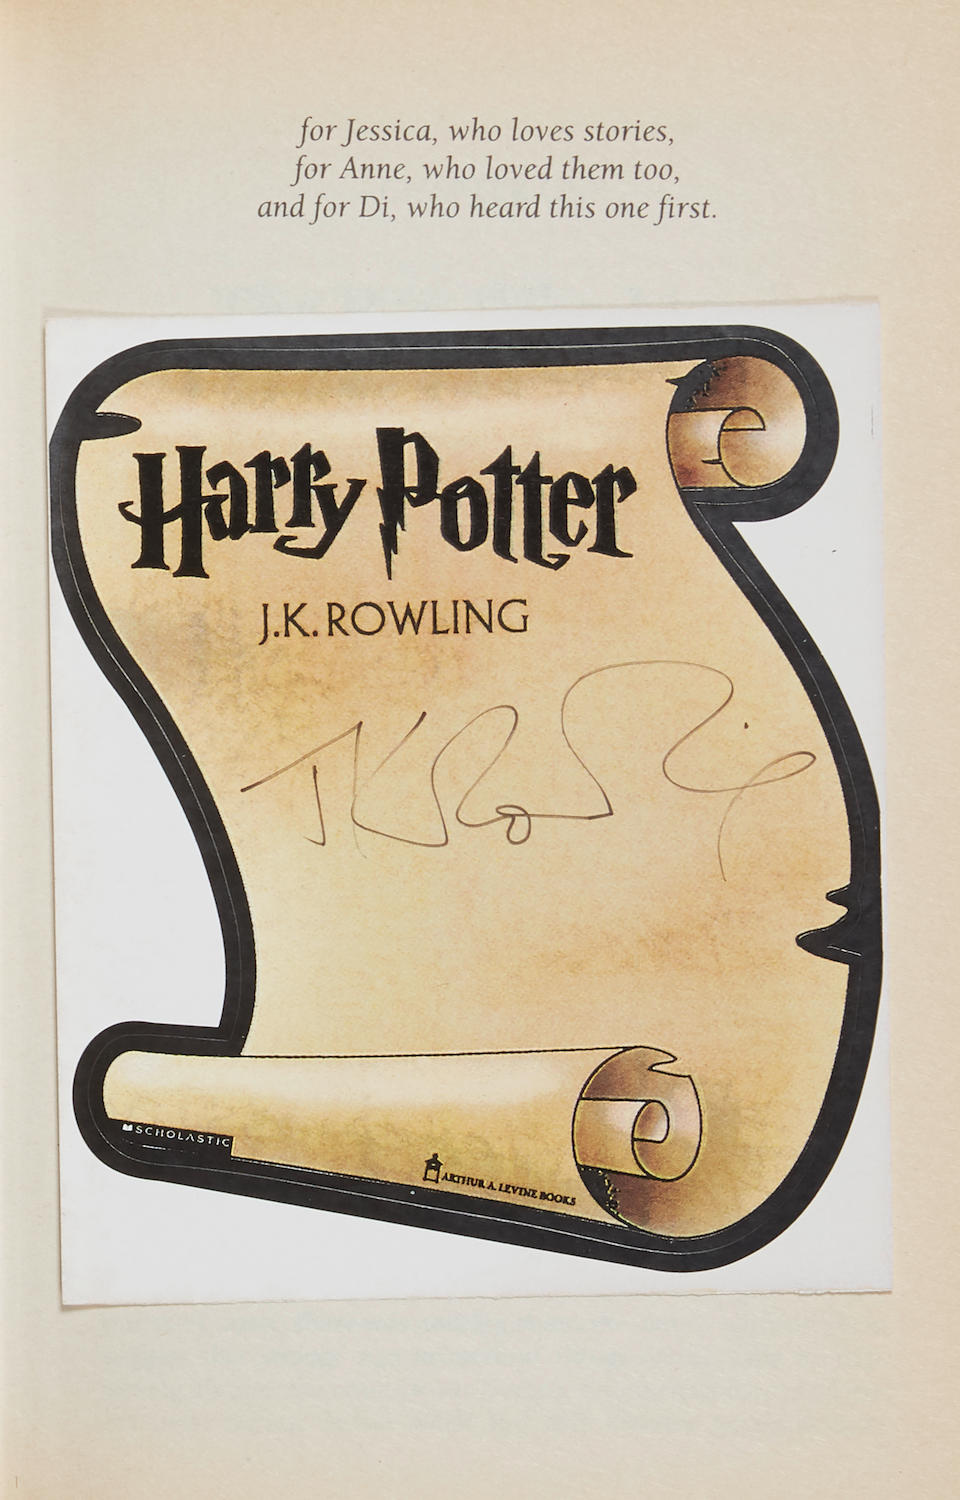 ROWLING, J.K. B. 1965. Harry Potter and the Philosopher's Stone. London: Bloomsbury, [1997].